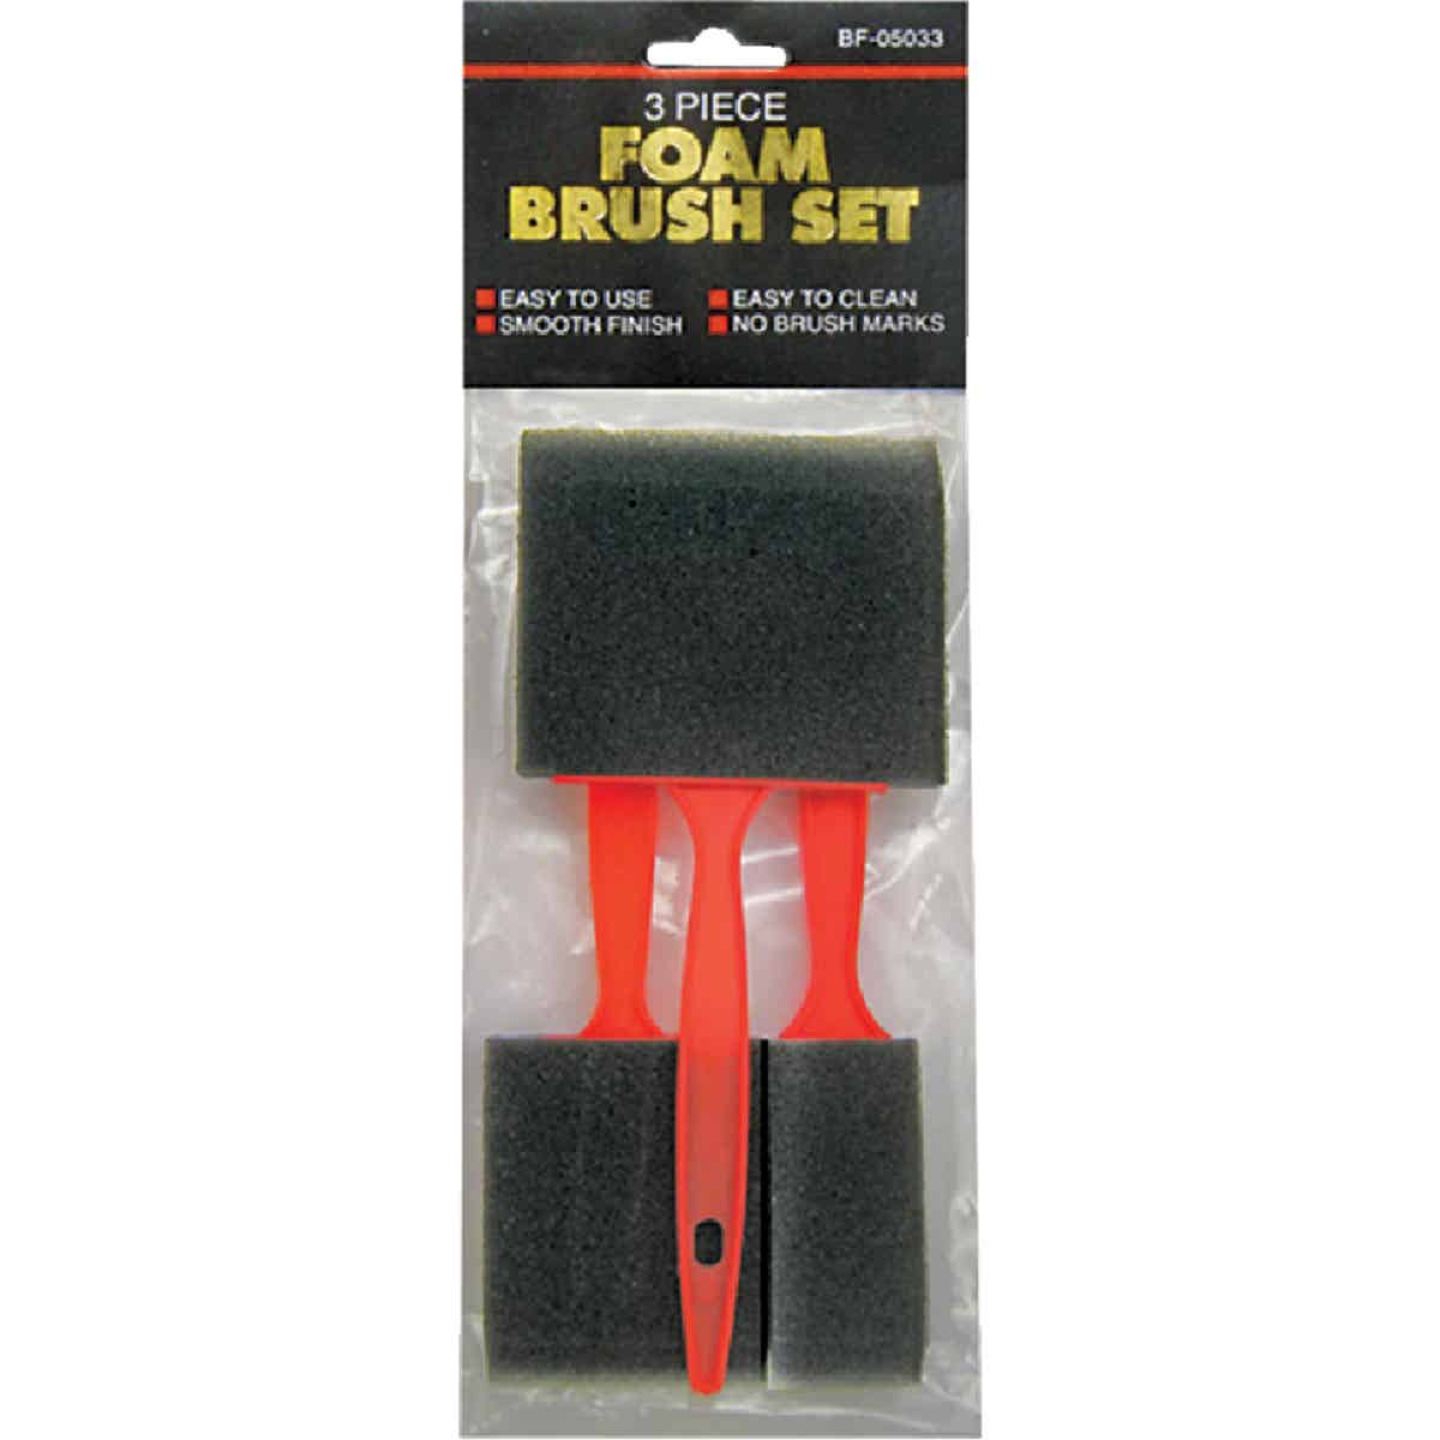 Jacent 1 In., 2 In., 3 In. Foam Brush Set (3-Pieces)  Image 1